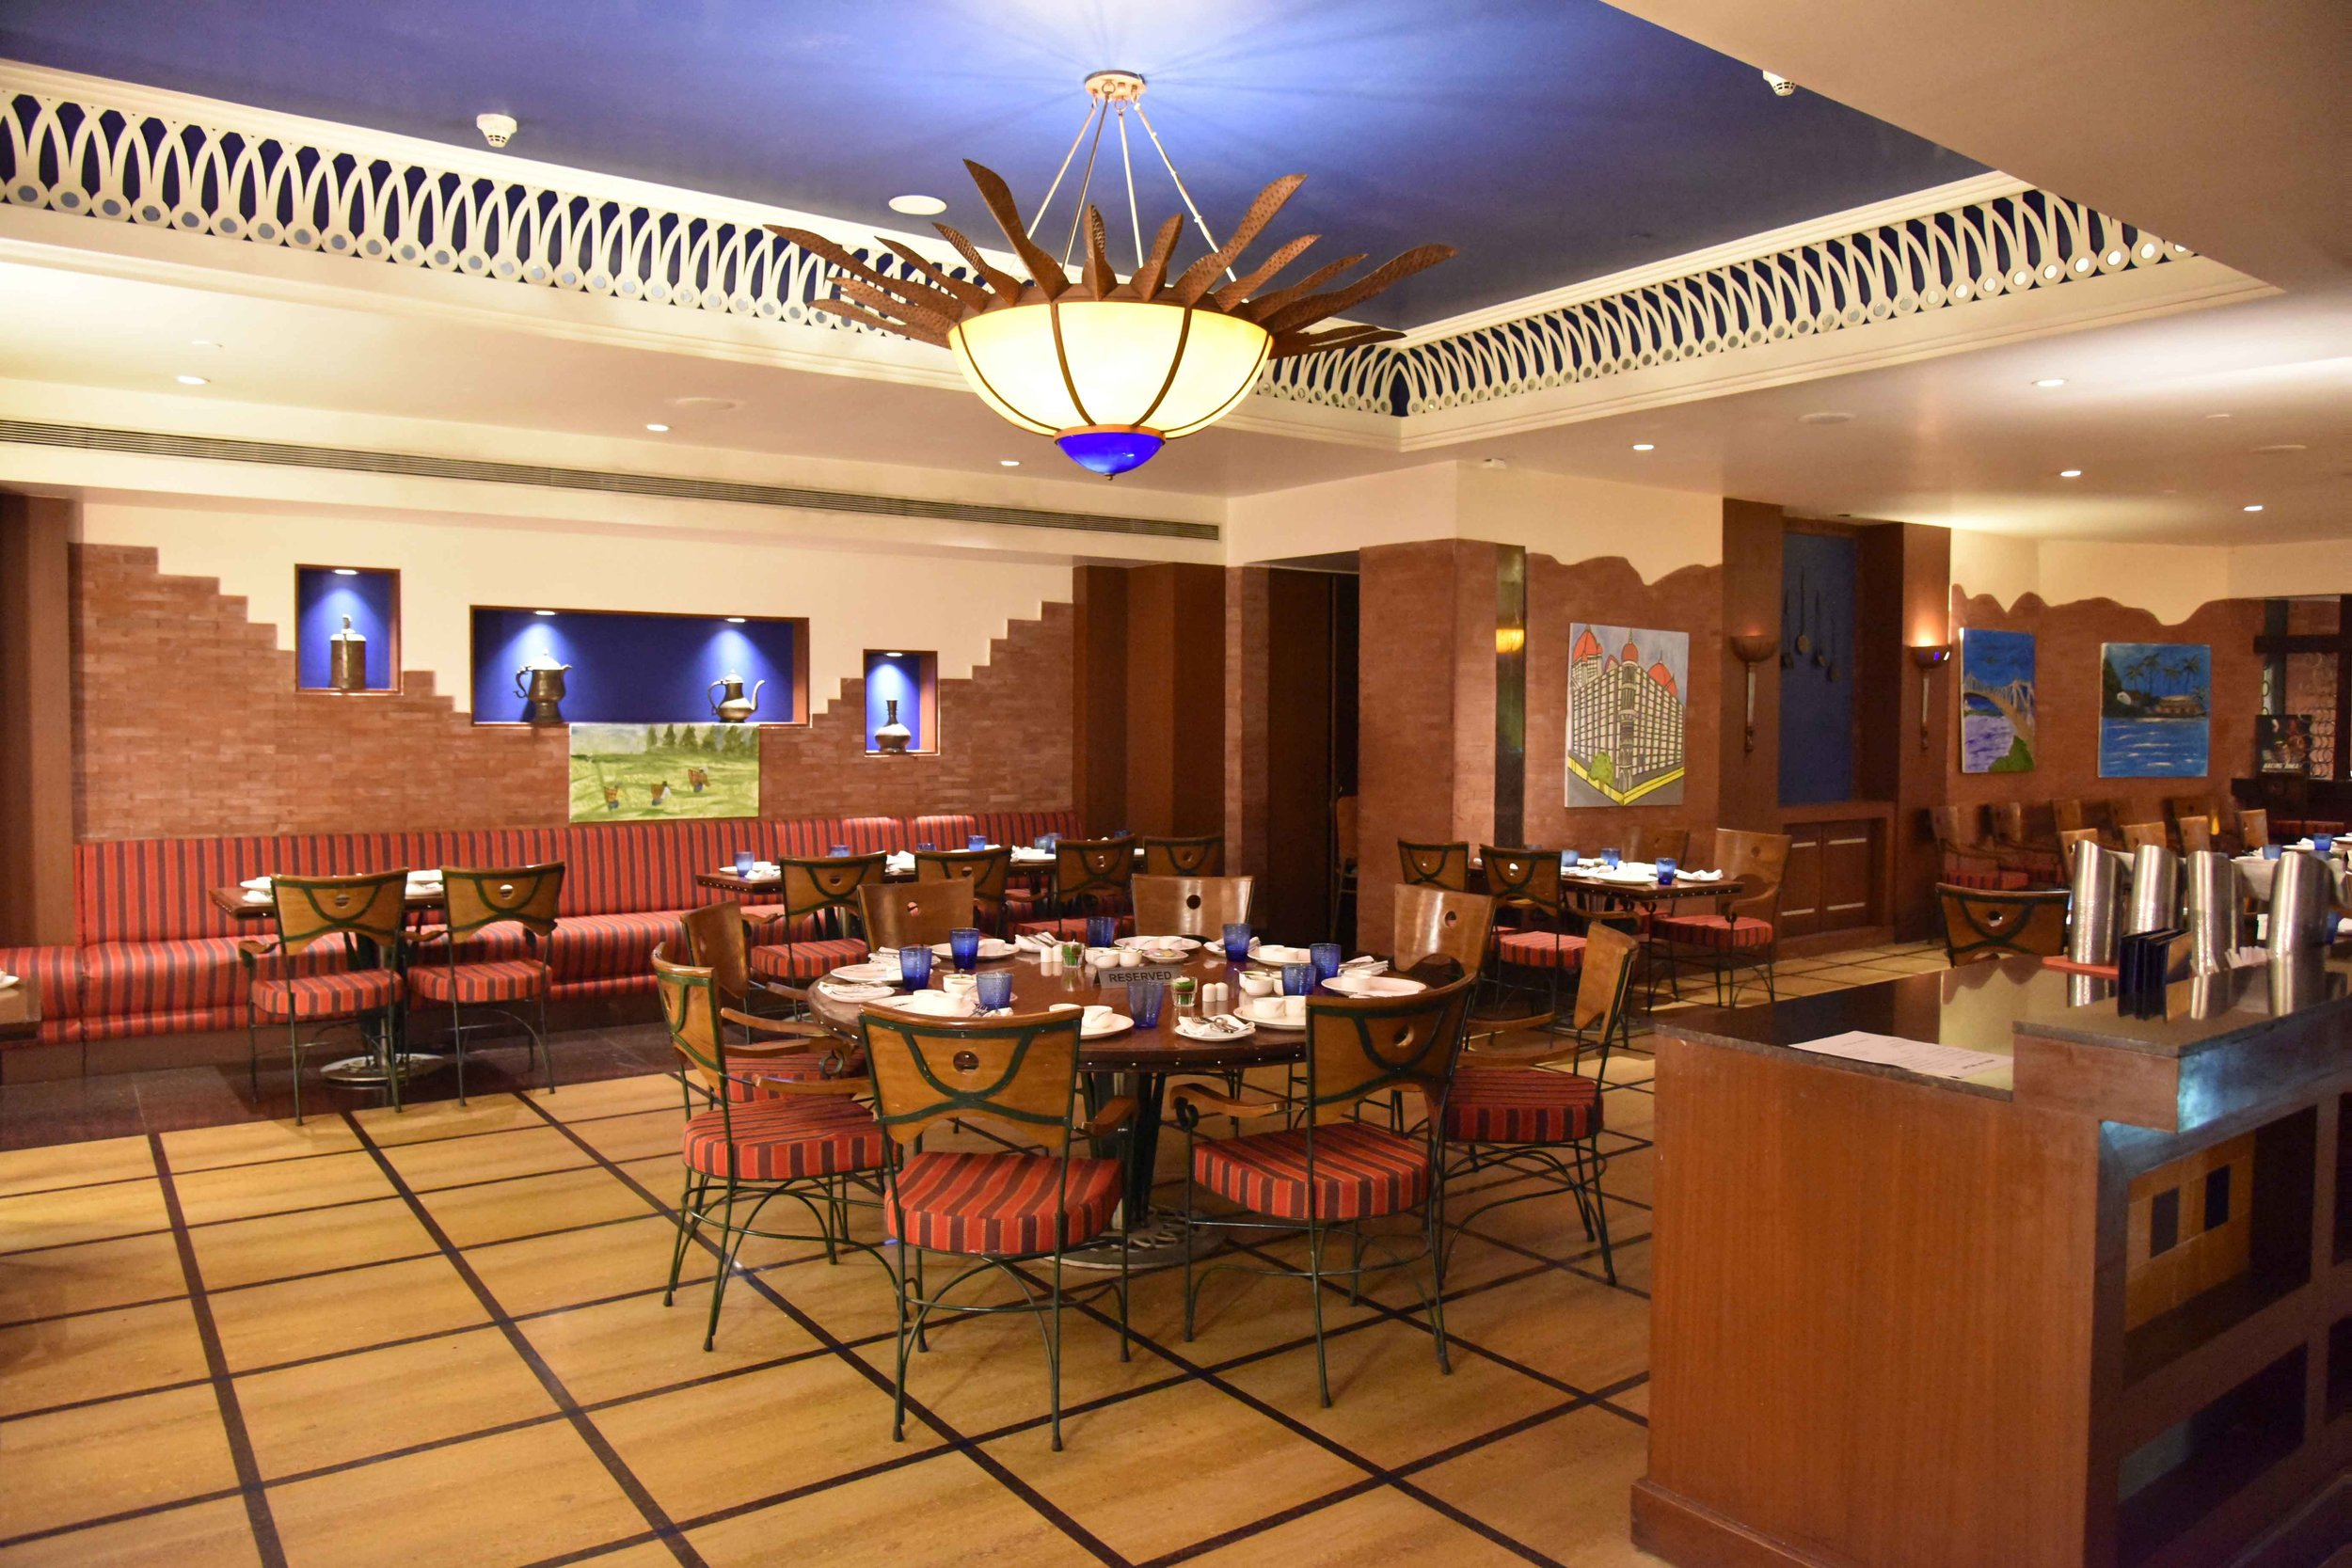 Kabab Factory, Radisson Blu Hotel, Ranchi, India. Image@thingstodot.com